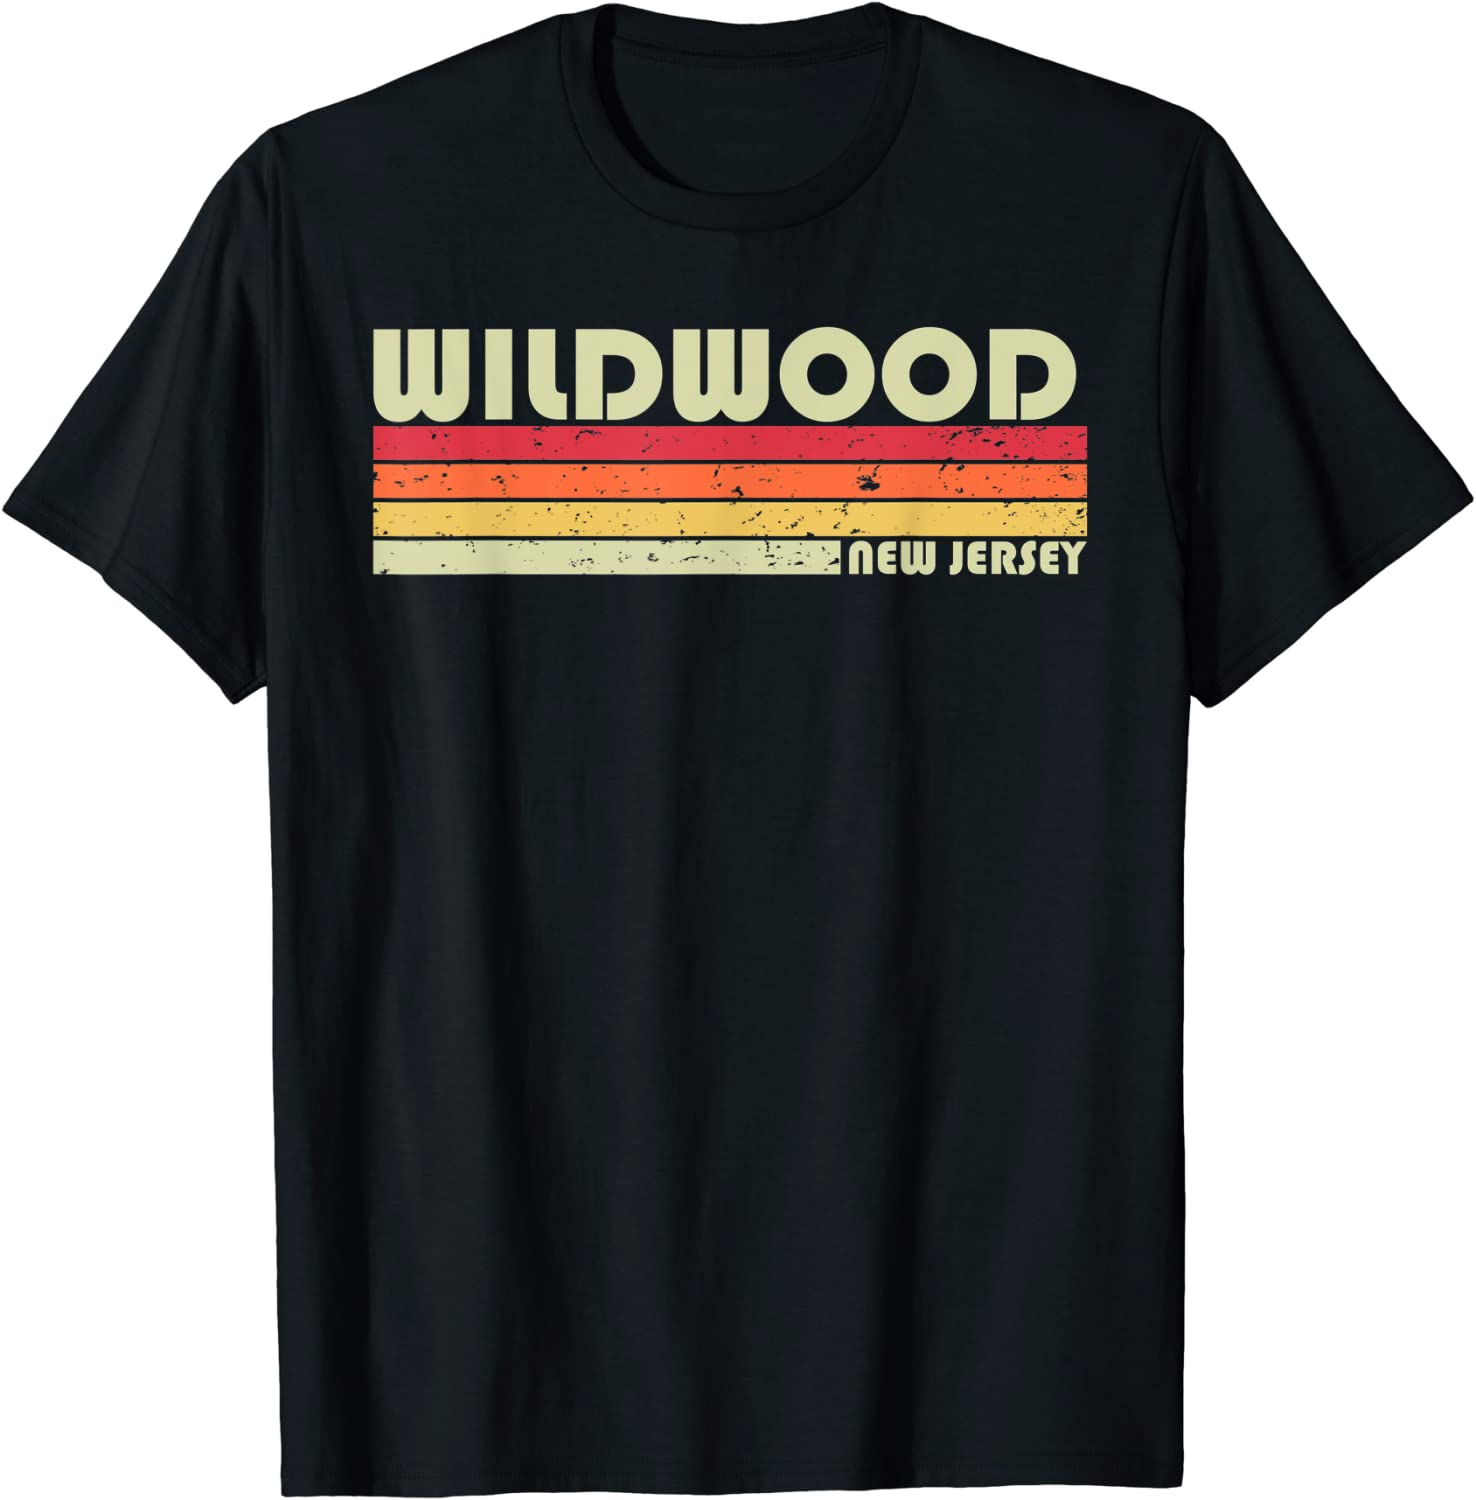 WILDWOOD NJ NEW JERSEY Funny City Home Roots Gift Retro 80s T-Shirt